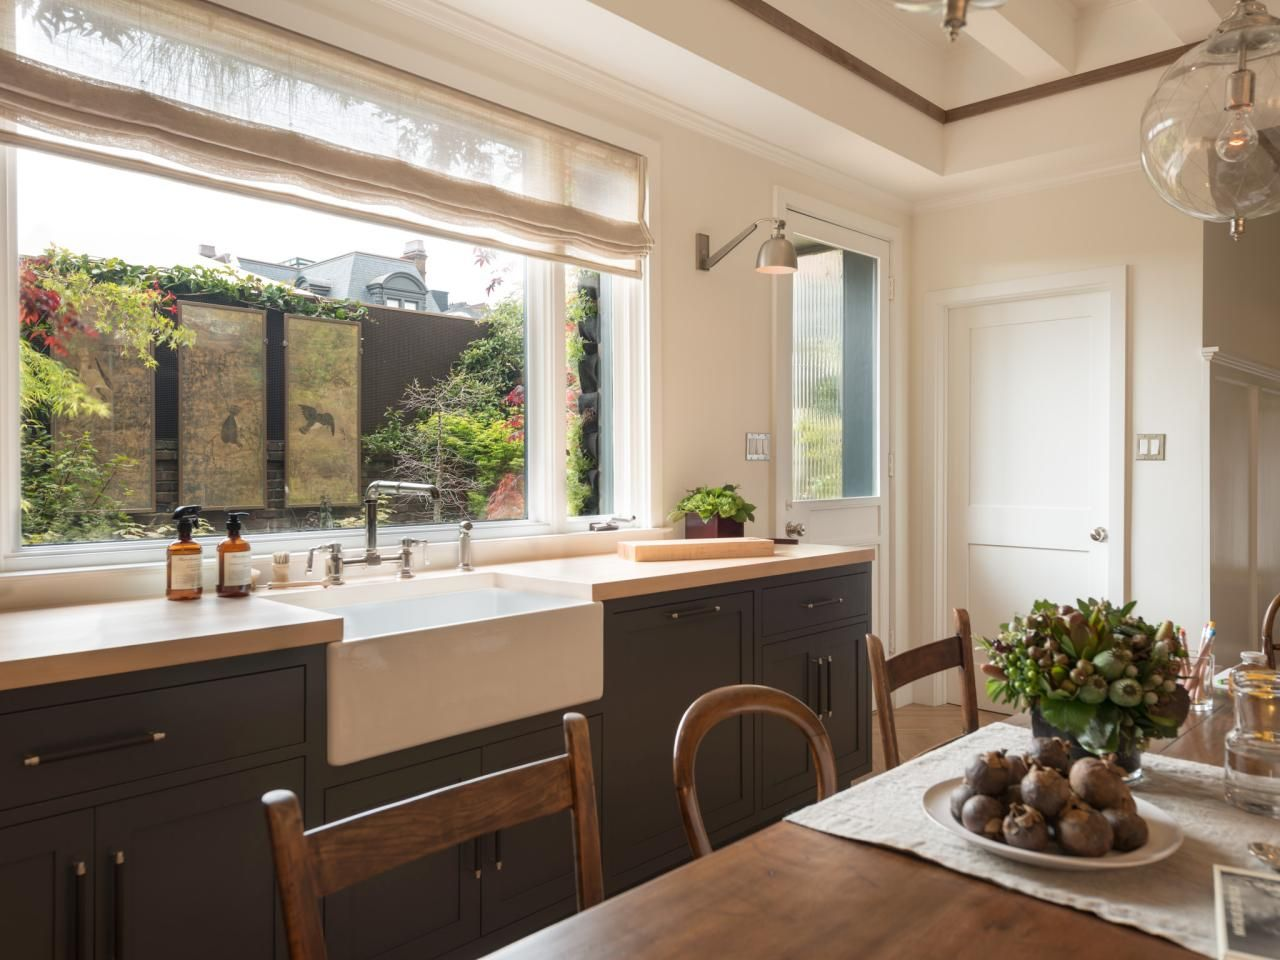 Kitchen Window Pictures: The Best Options, Styles & Ideas | Deco